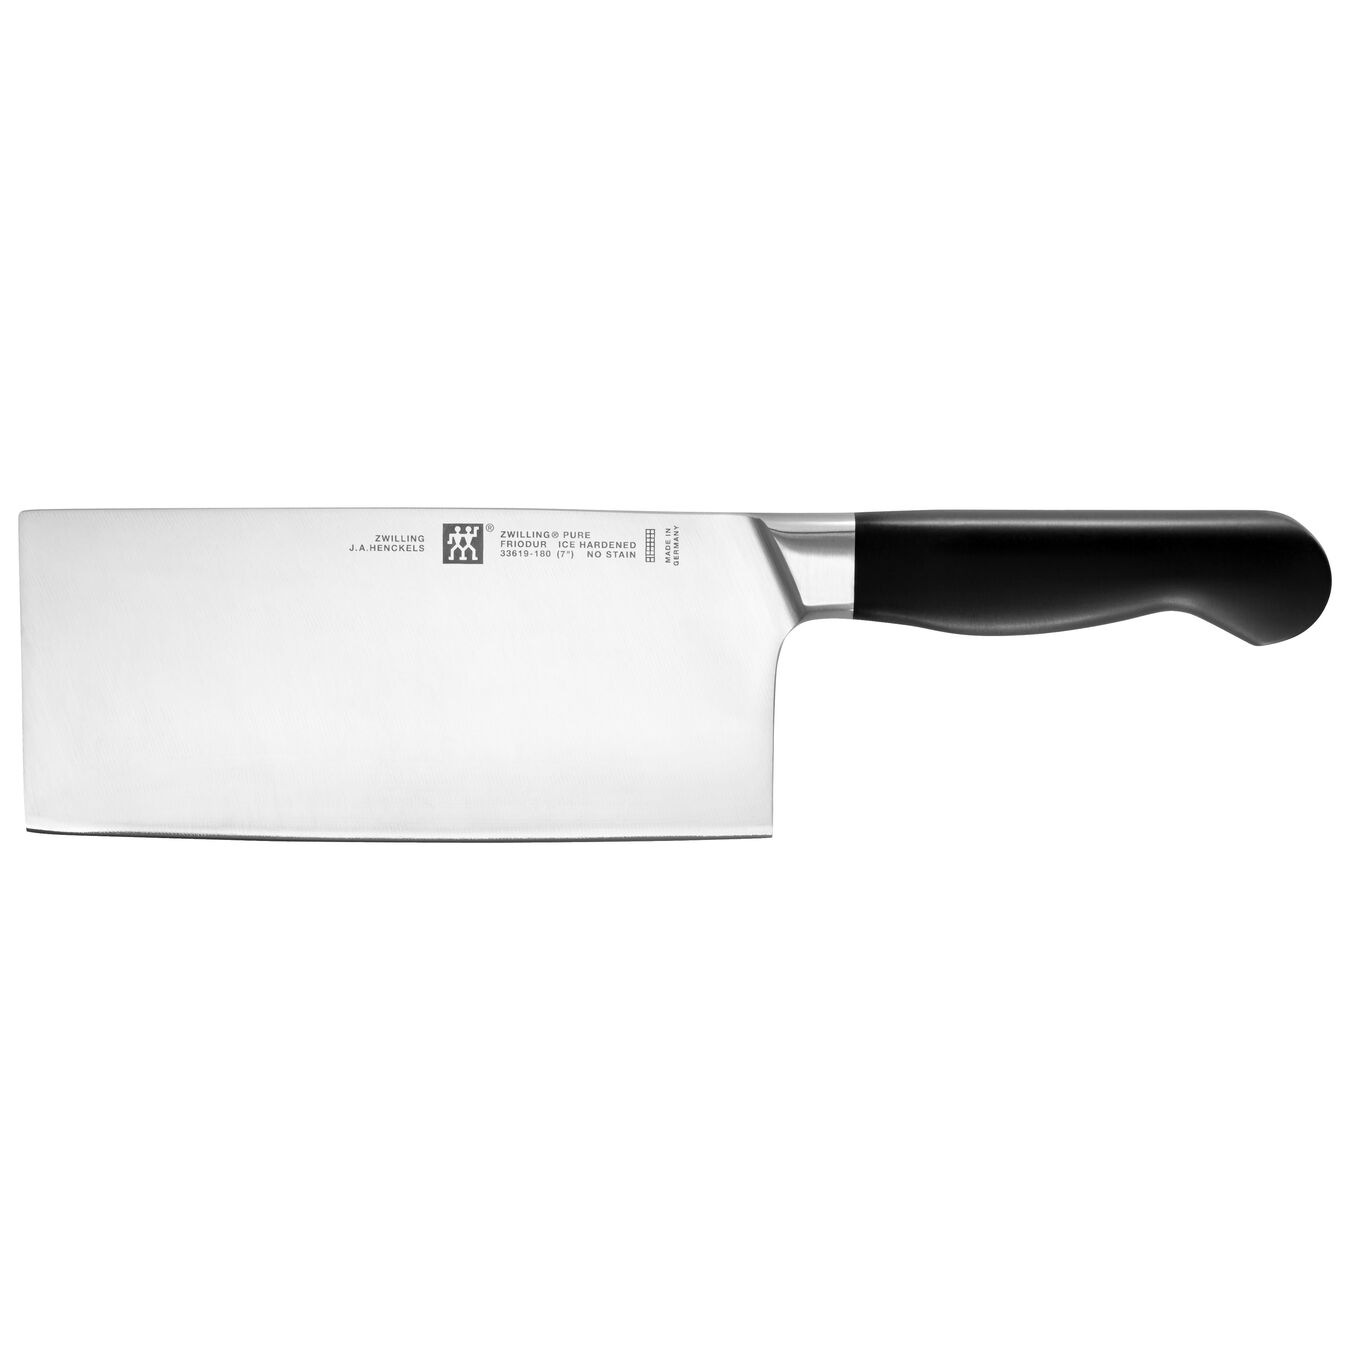 7 inch Chinese chef's knife - Visual Imperfections,,large 1